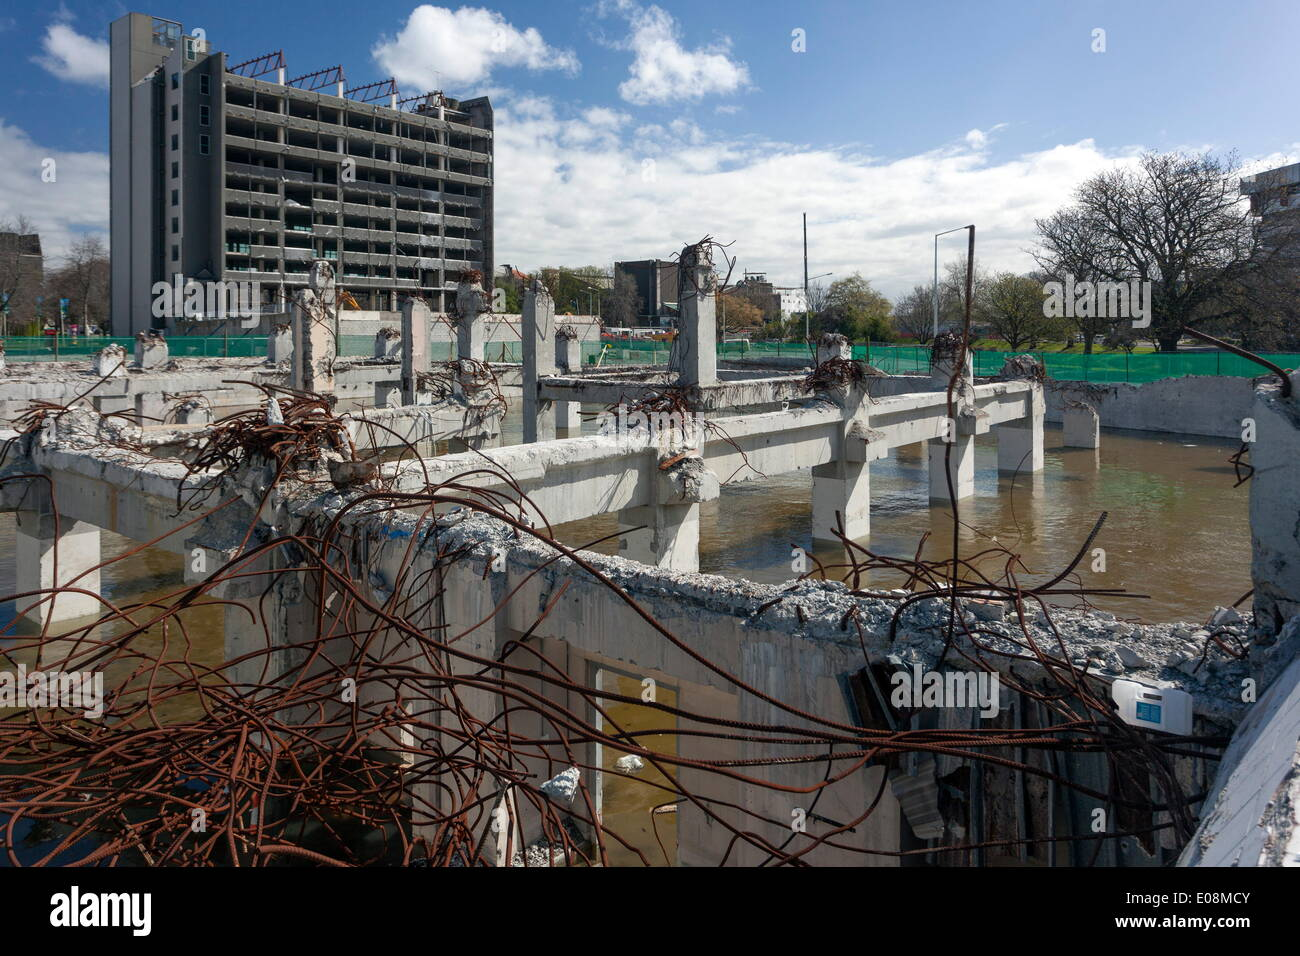 Ruined buildings following earthquakes, Christchurch, Canterbury, South Island, New Zealand, Pacific - Stock Image